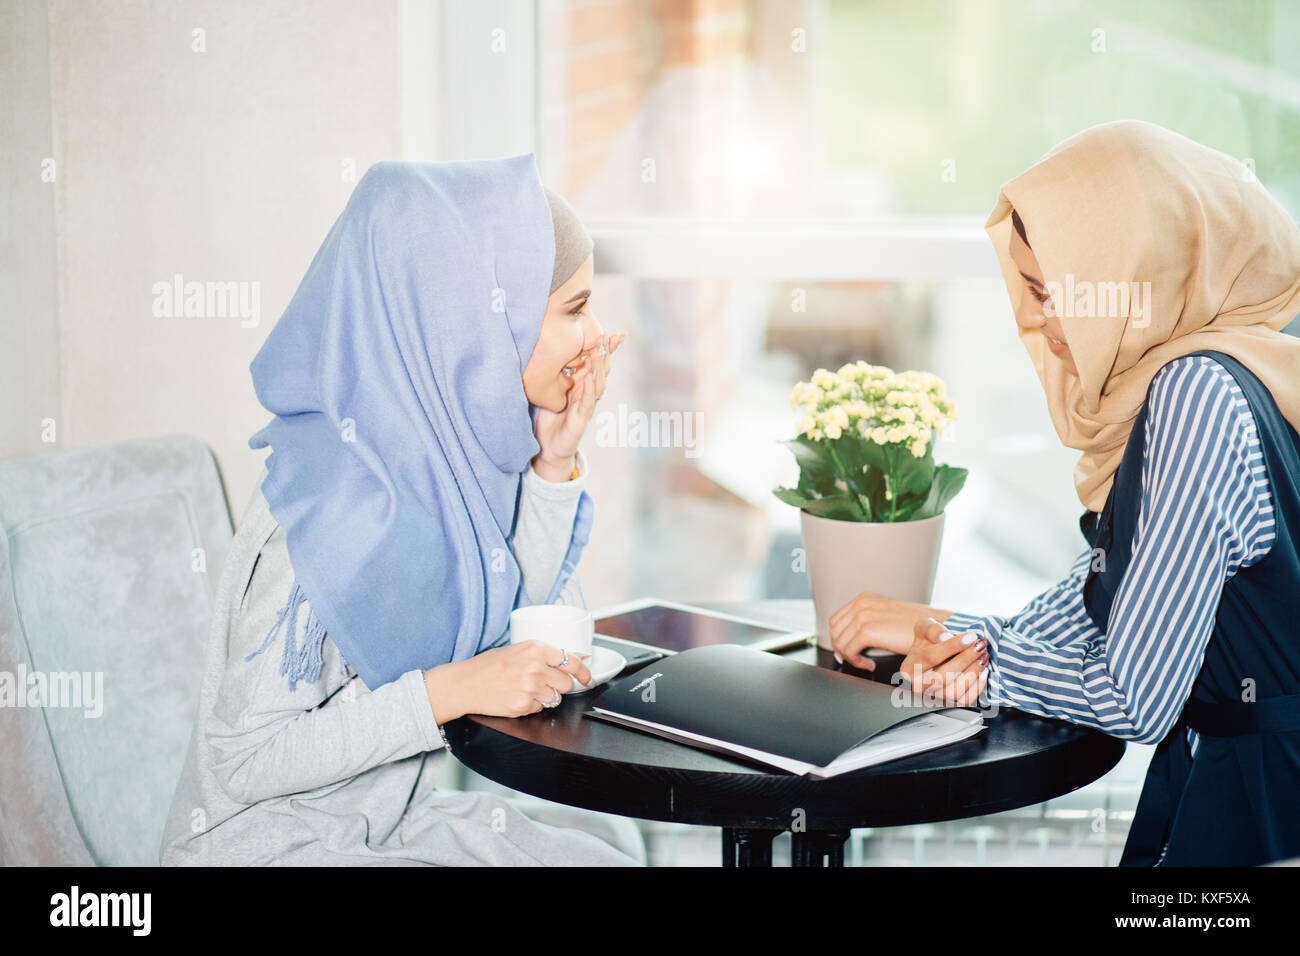 portrait of two woman talking while sitting on couch enjoying coffee - Stock Image